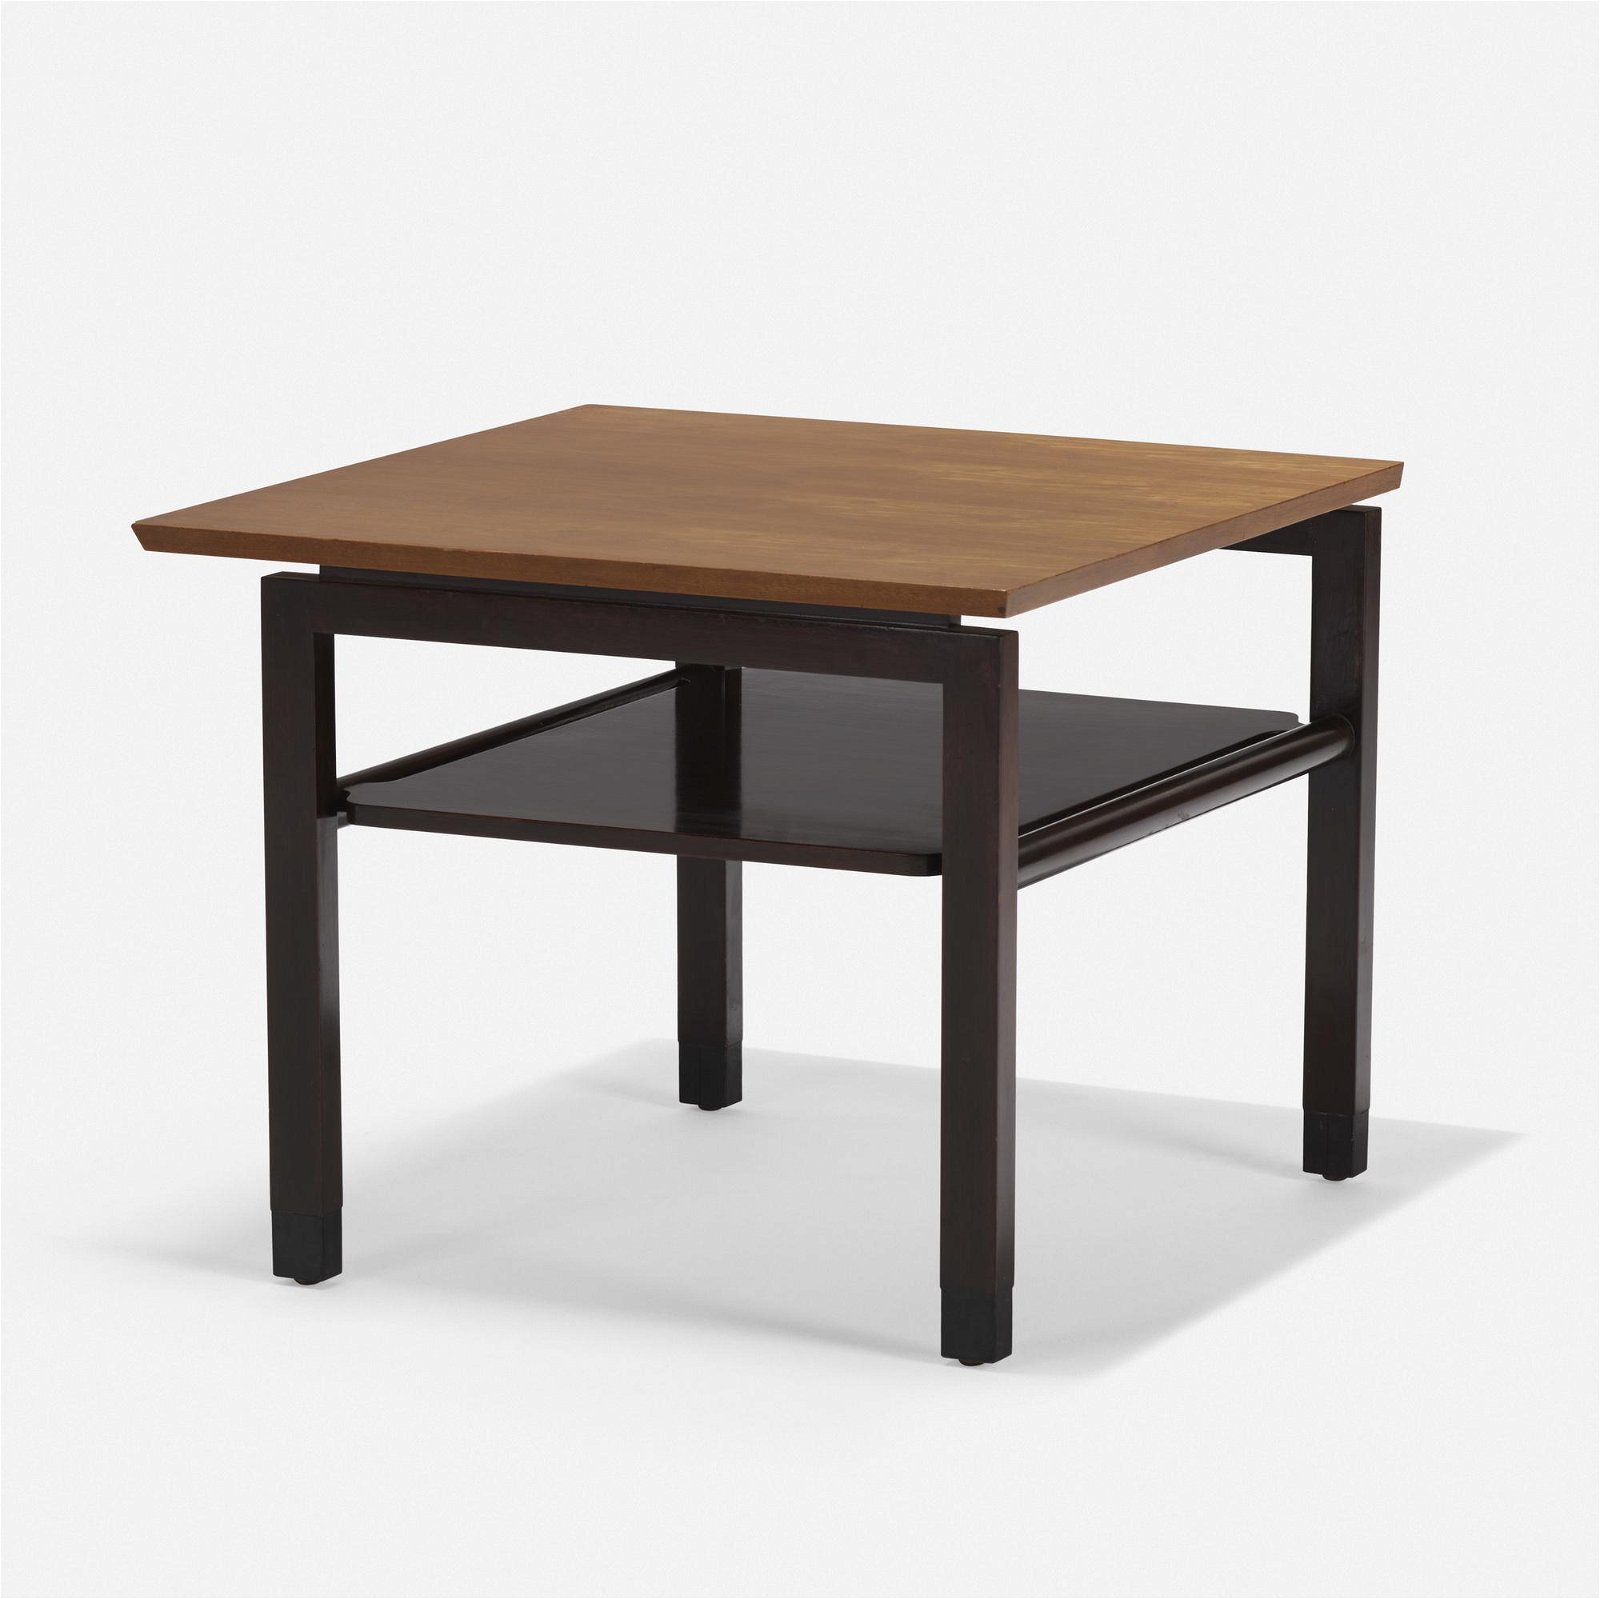 Edward Wormley, occasional table, model no. 162